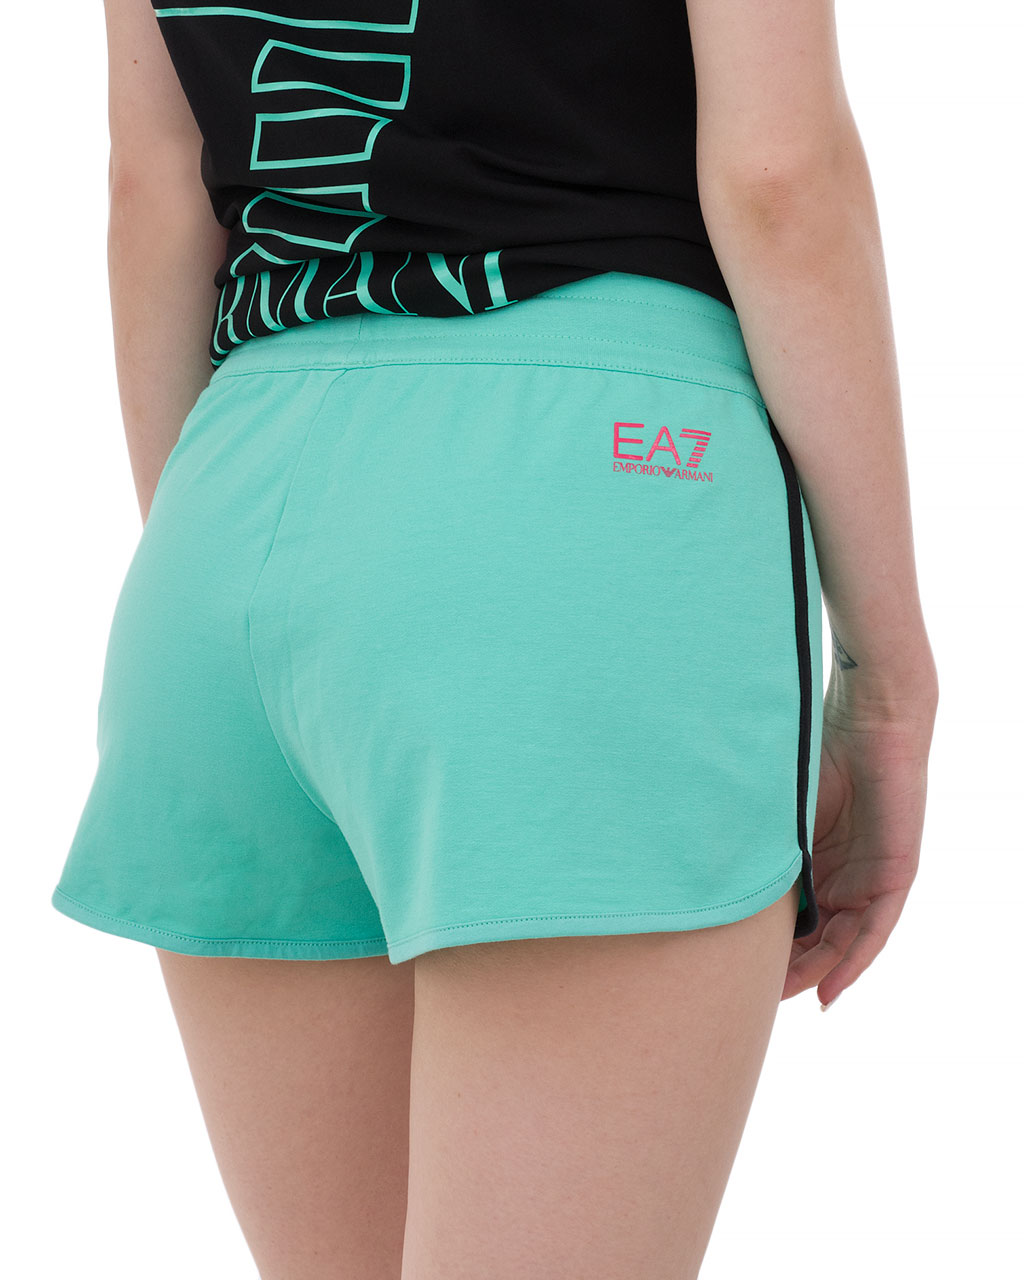 Women's sports shorts 3GTS53-TN31Z-1871/92-1 (4)